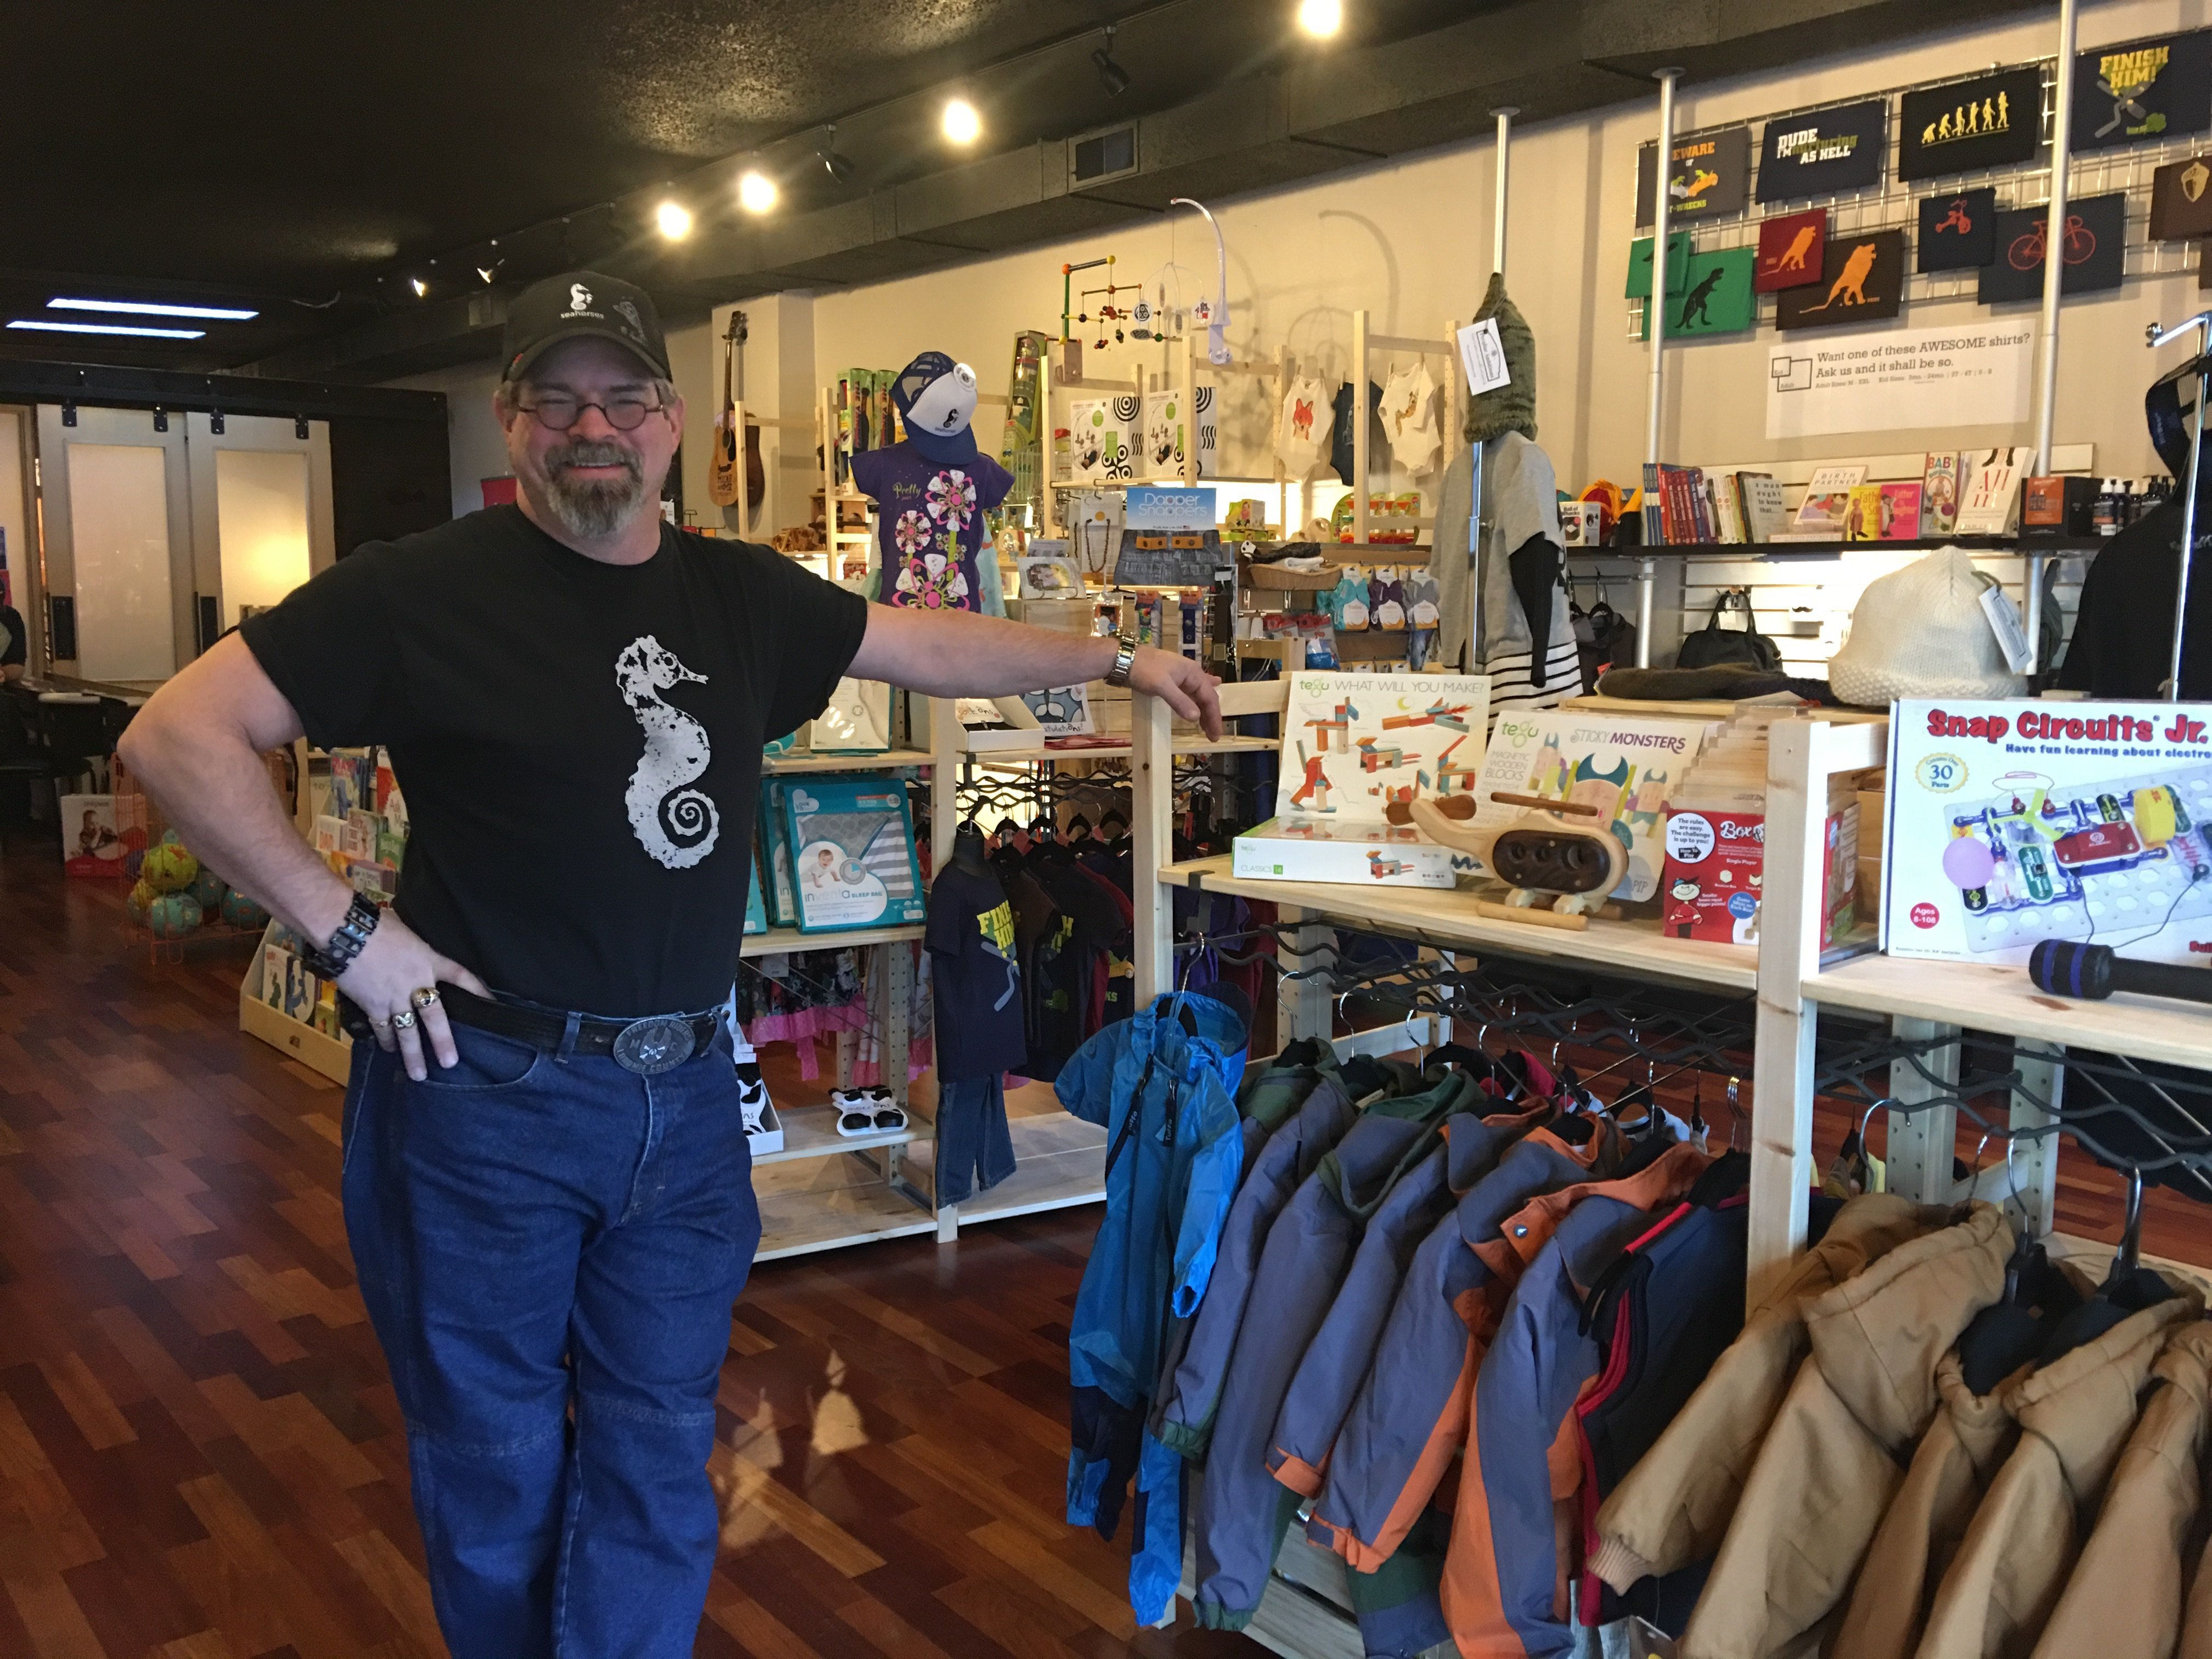 Don Hudson opened Seahorses, a father-focused store and parenting space, in June 2015.